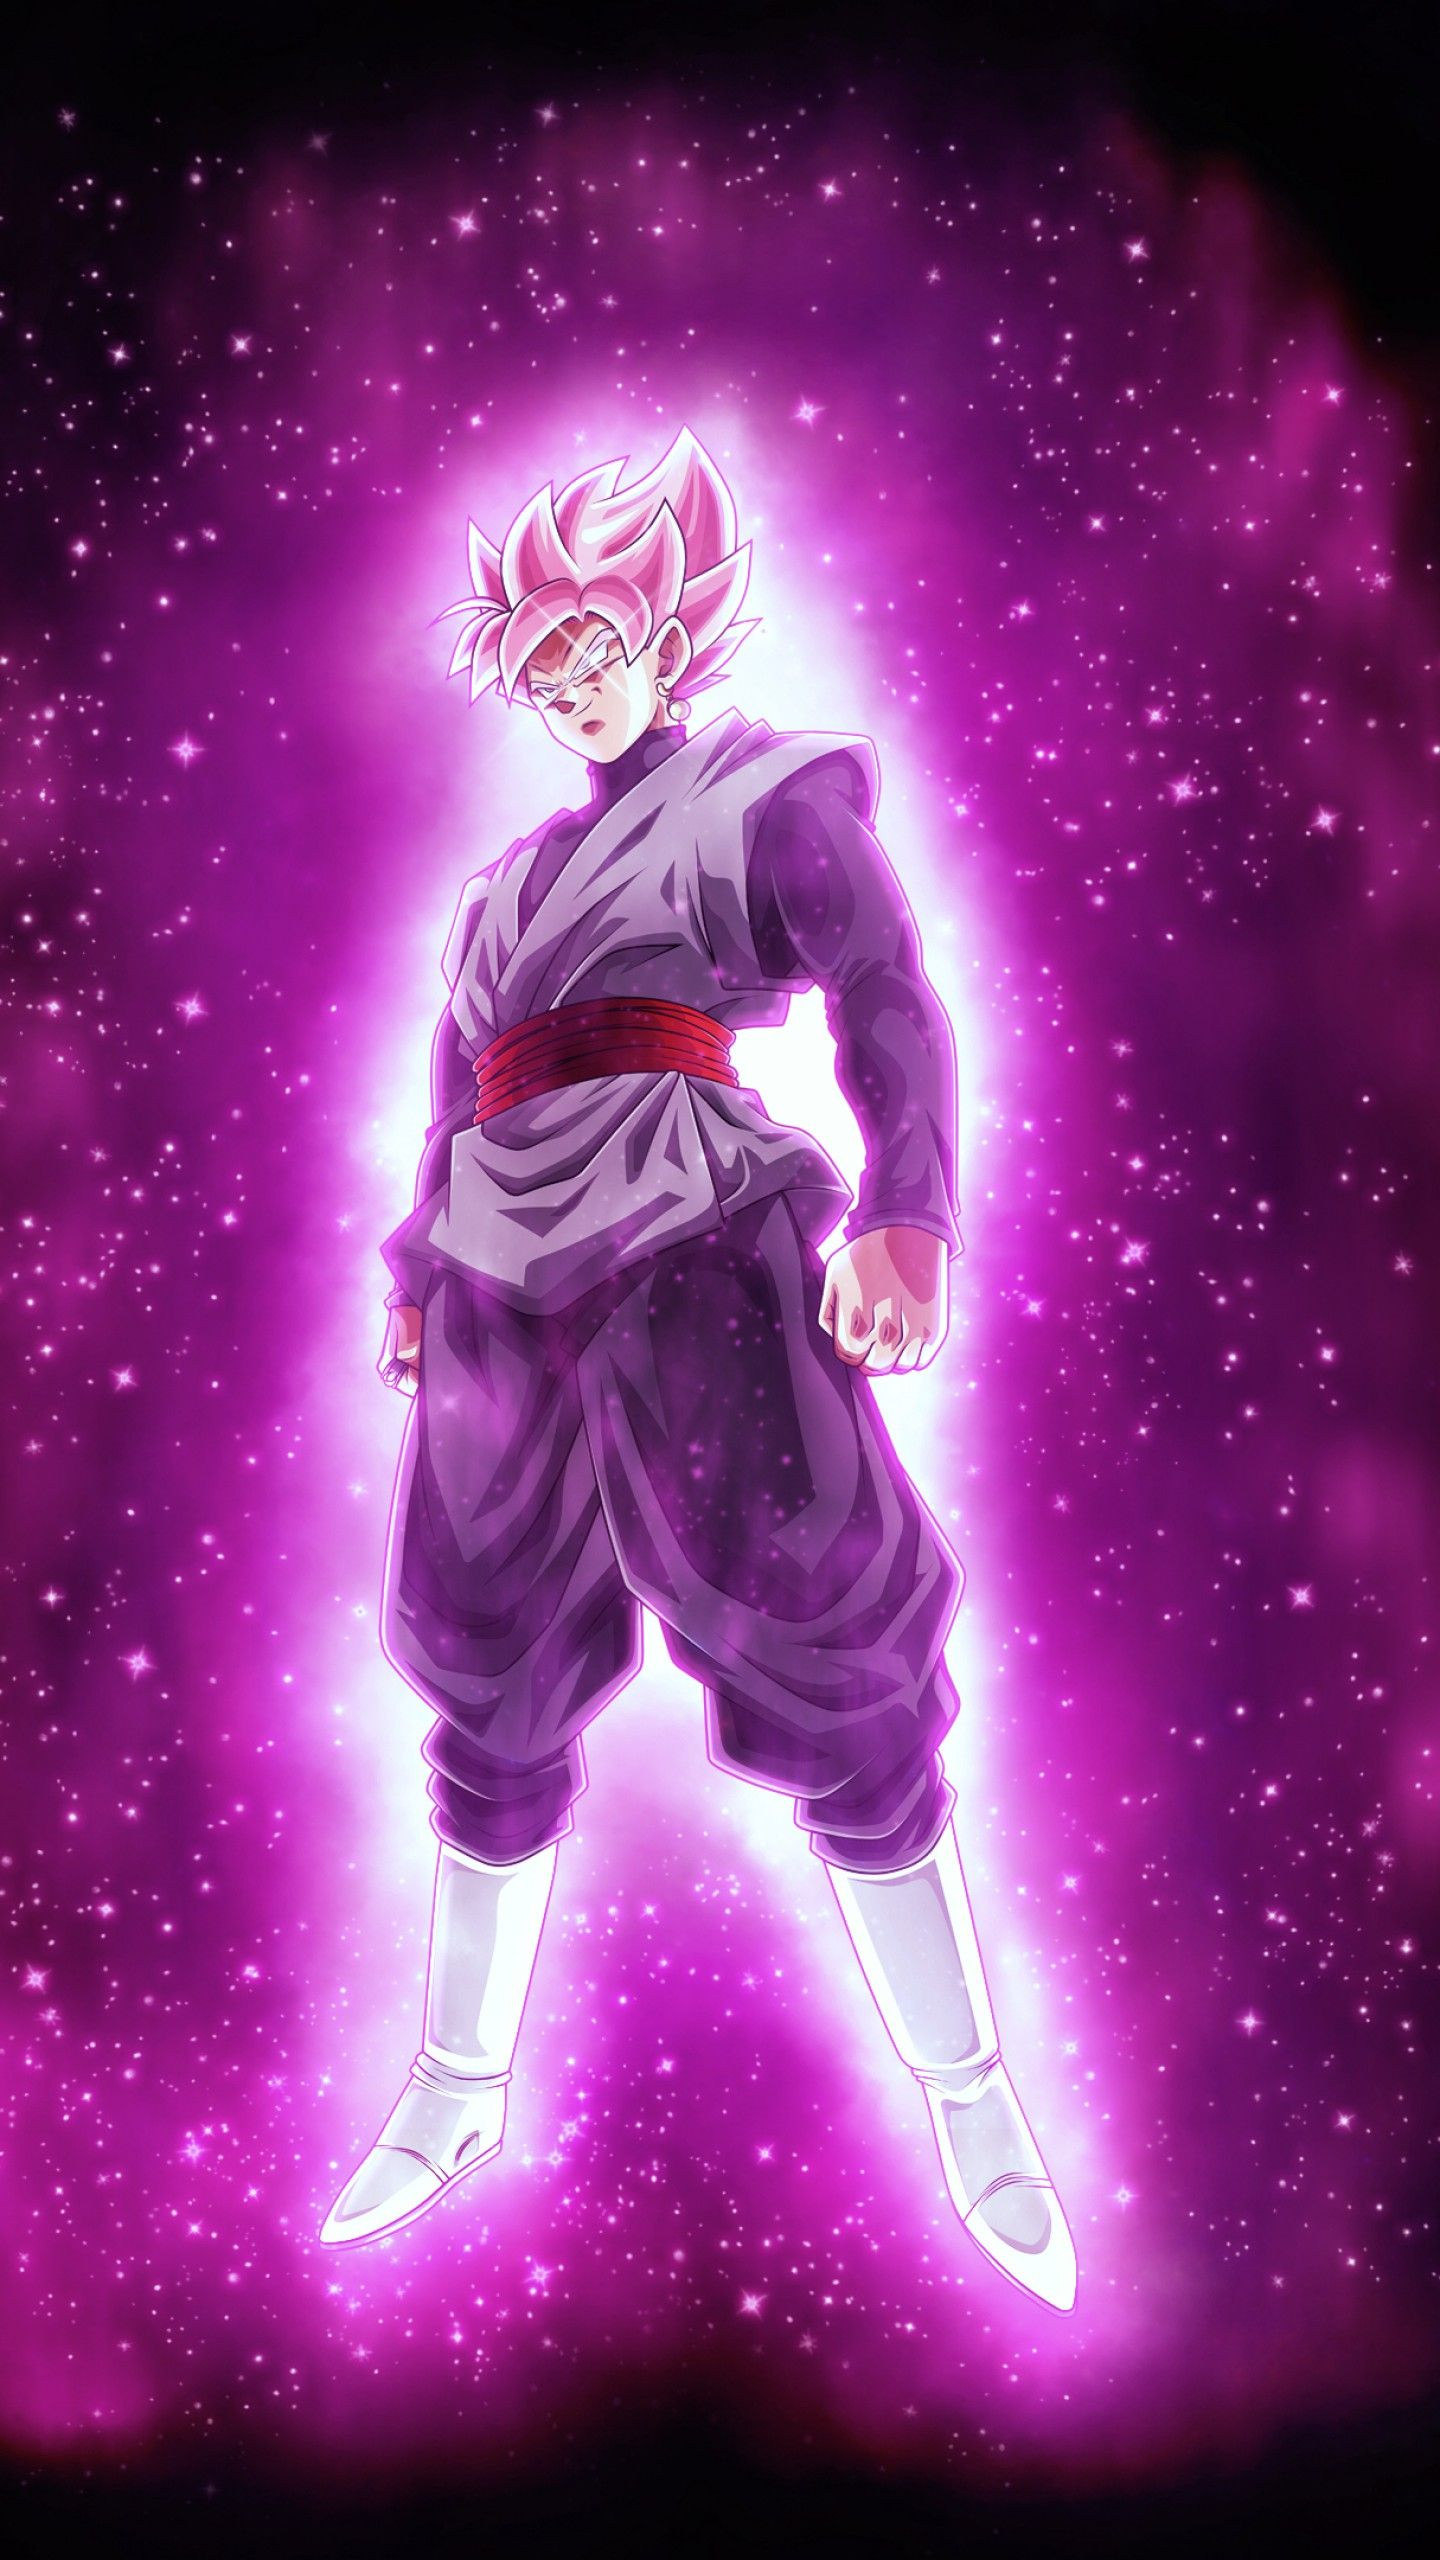 Wallpaper Super Saiyan Rose Goku Black Dragon Ball Black Goku Wallpaper Hd Iphone 2971597 Hd Wallpaper Backgrounds Download